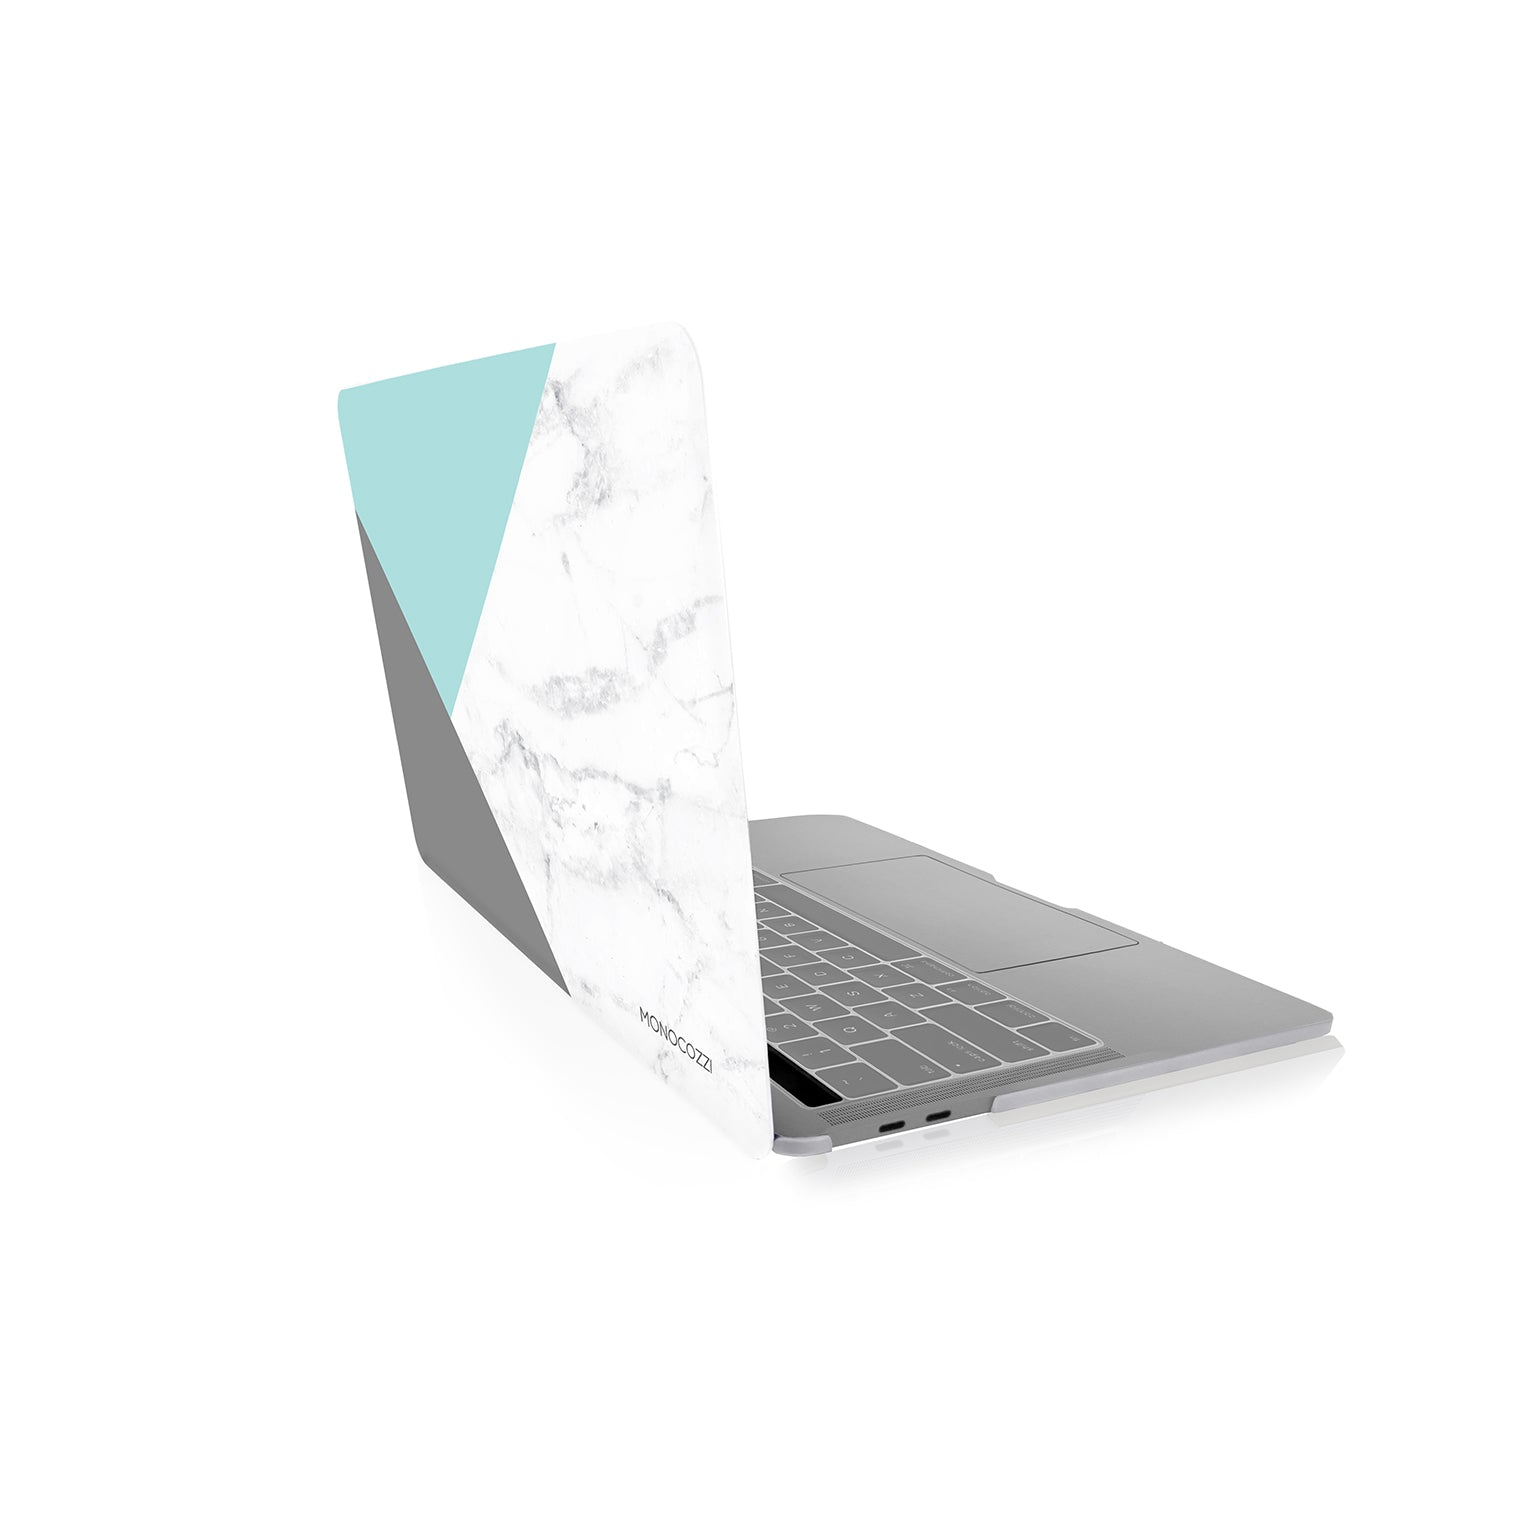 "Pattern Lab | Hard Case for Macbook Pro 13"" w/ USB-C - Marble (Tiffany)"